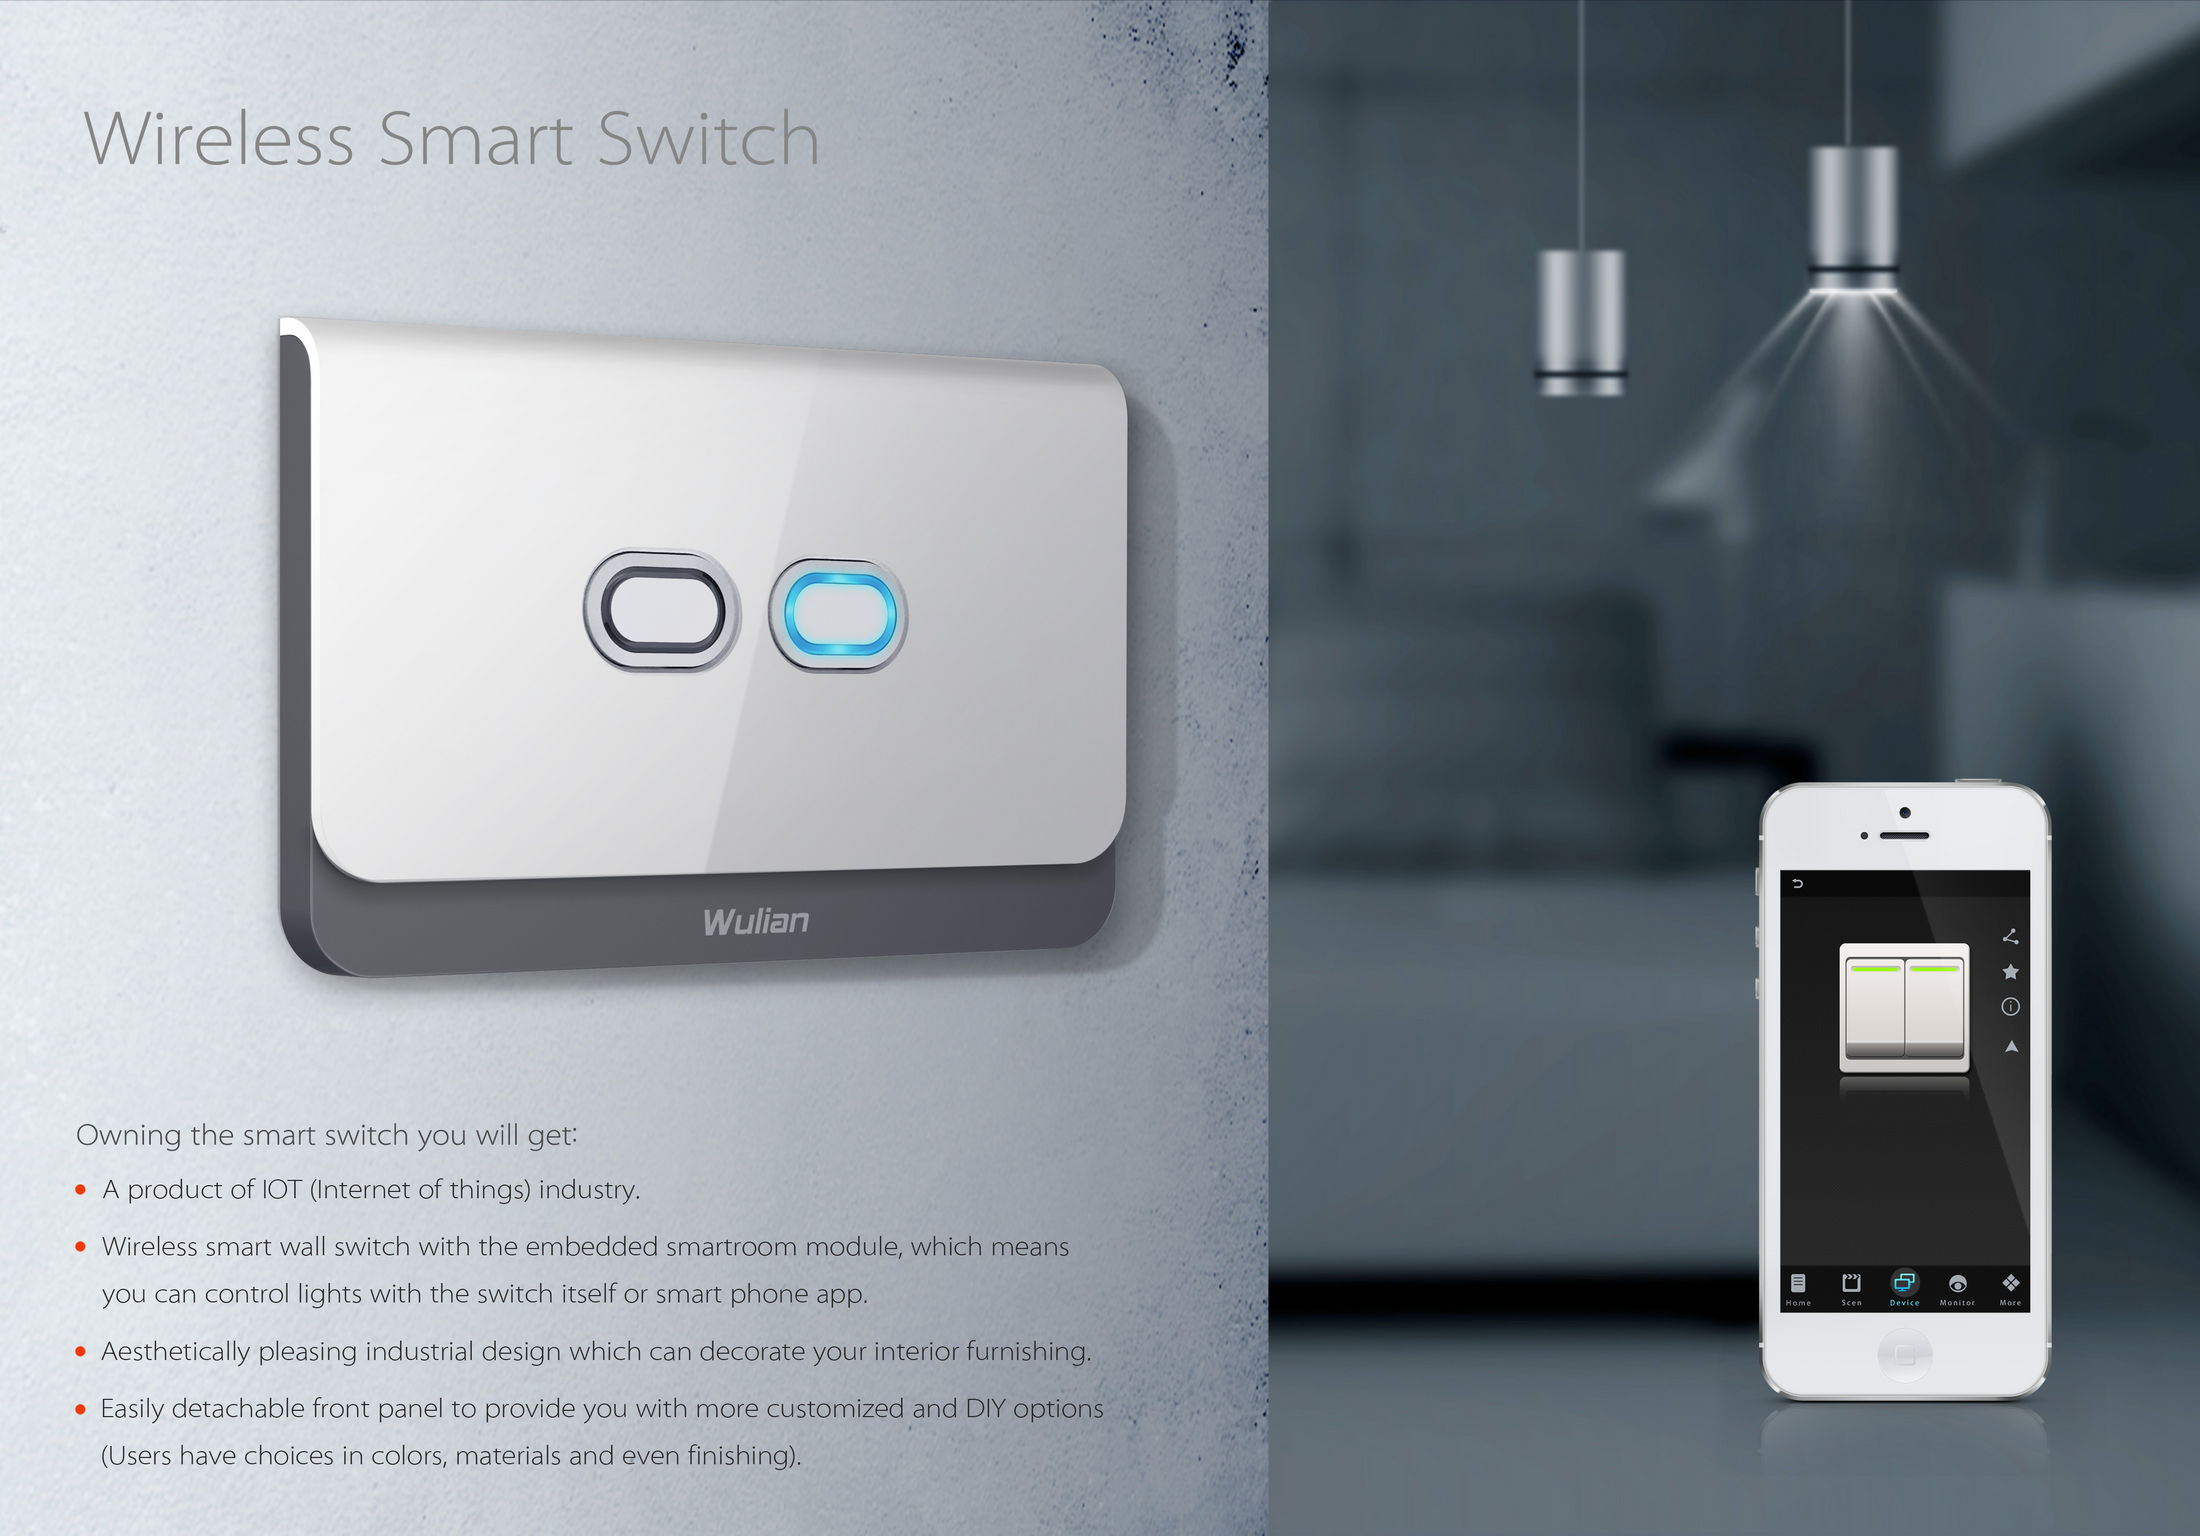 Wireless Smart Switch